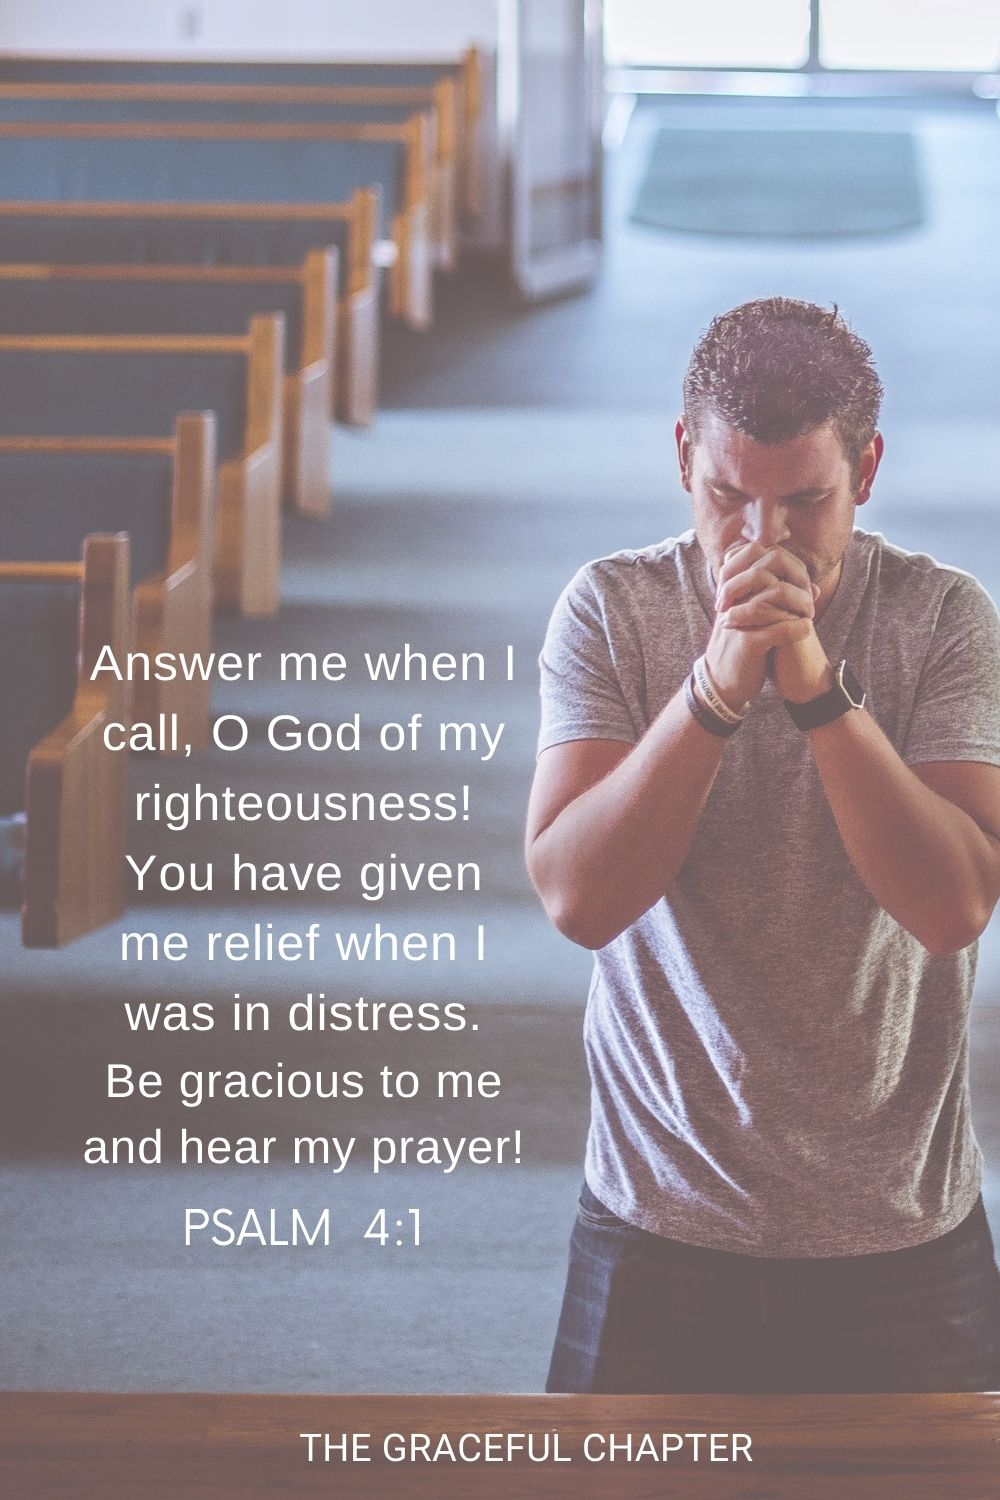 Answer me when I call, O God of my righteousness! You have given me relief when I was in distress. Be gracious to me and hear my prayer! Psalm 4:1